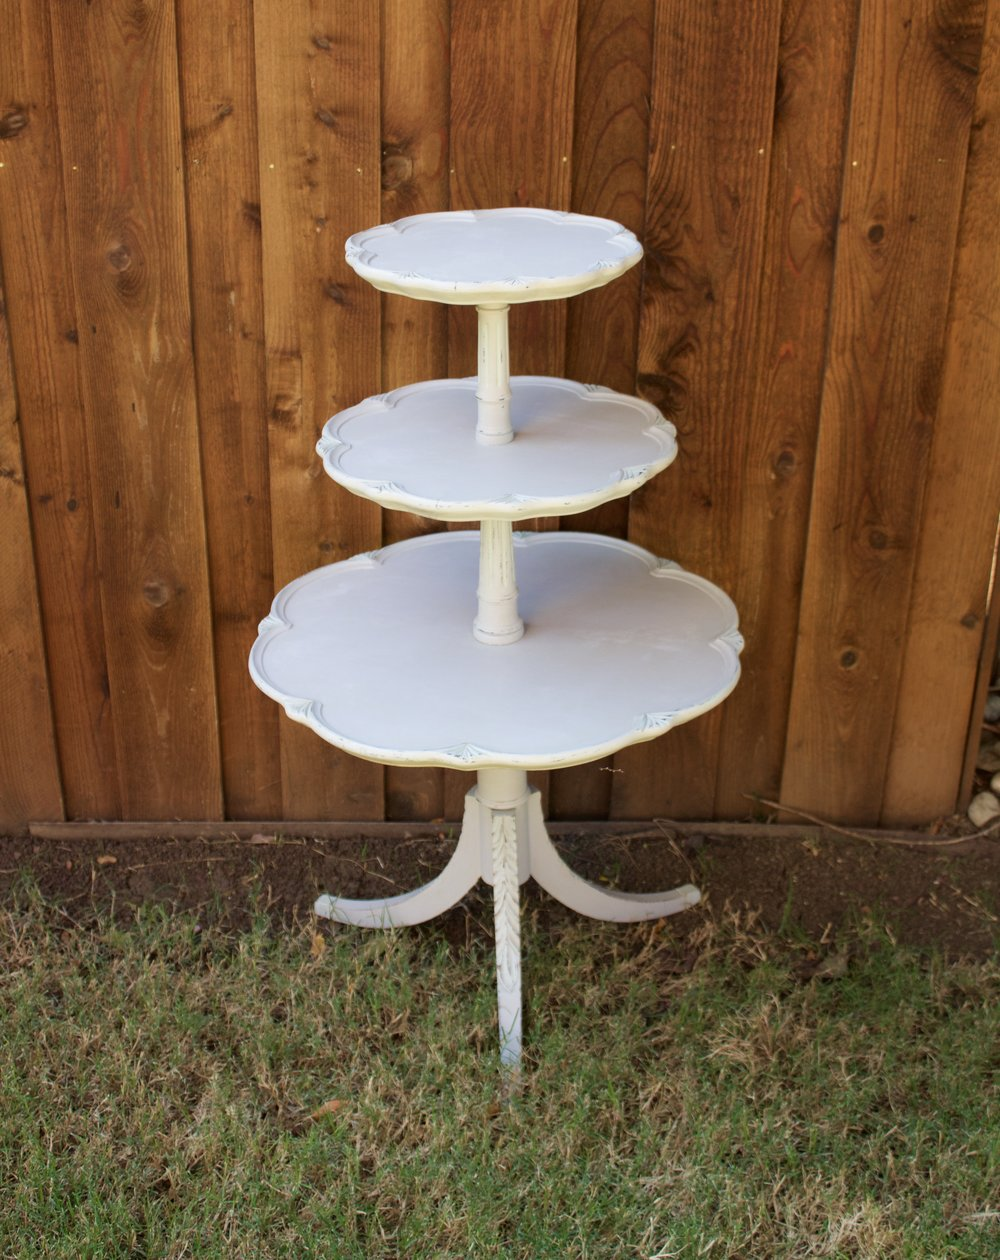 3 Tier Table makes a great cupcake display! Gray with mint accents $50 rent/185 purchase